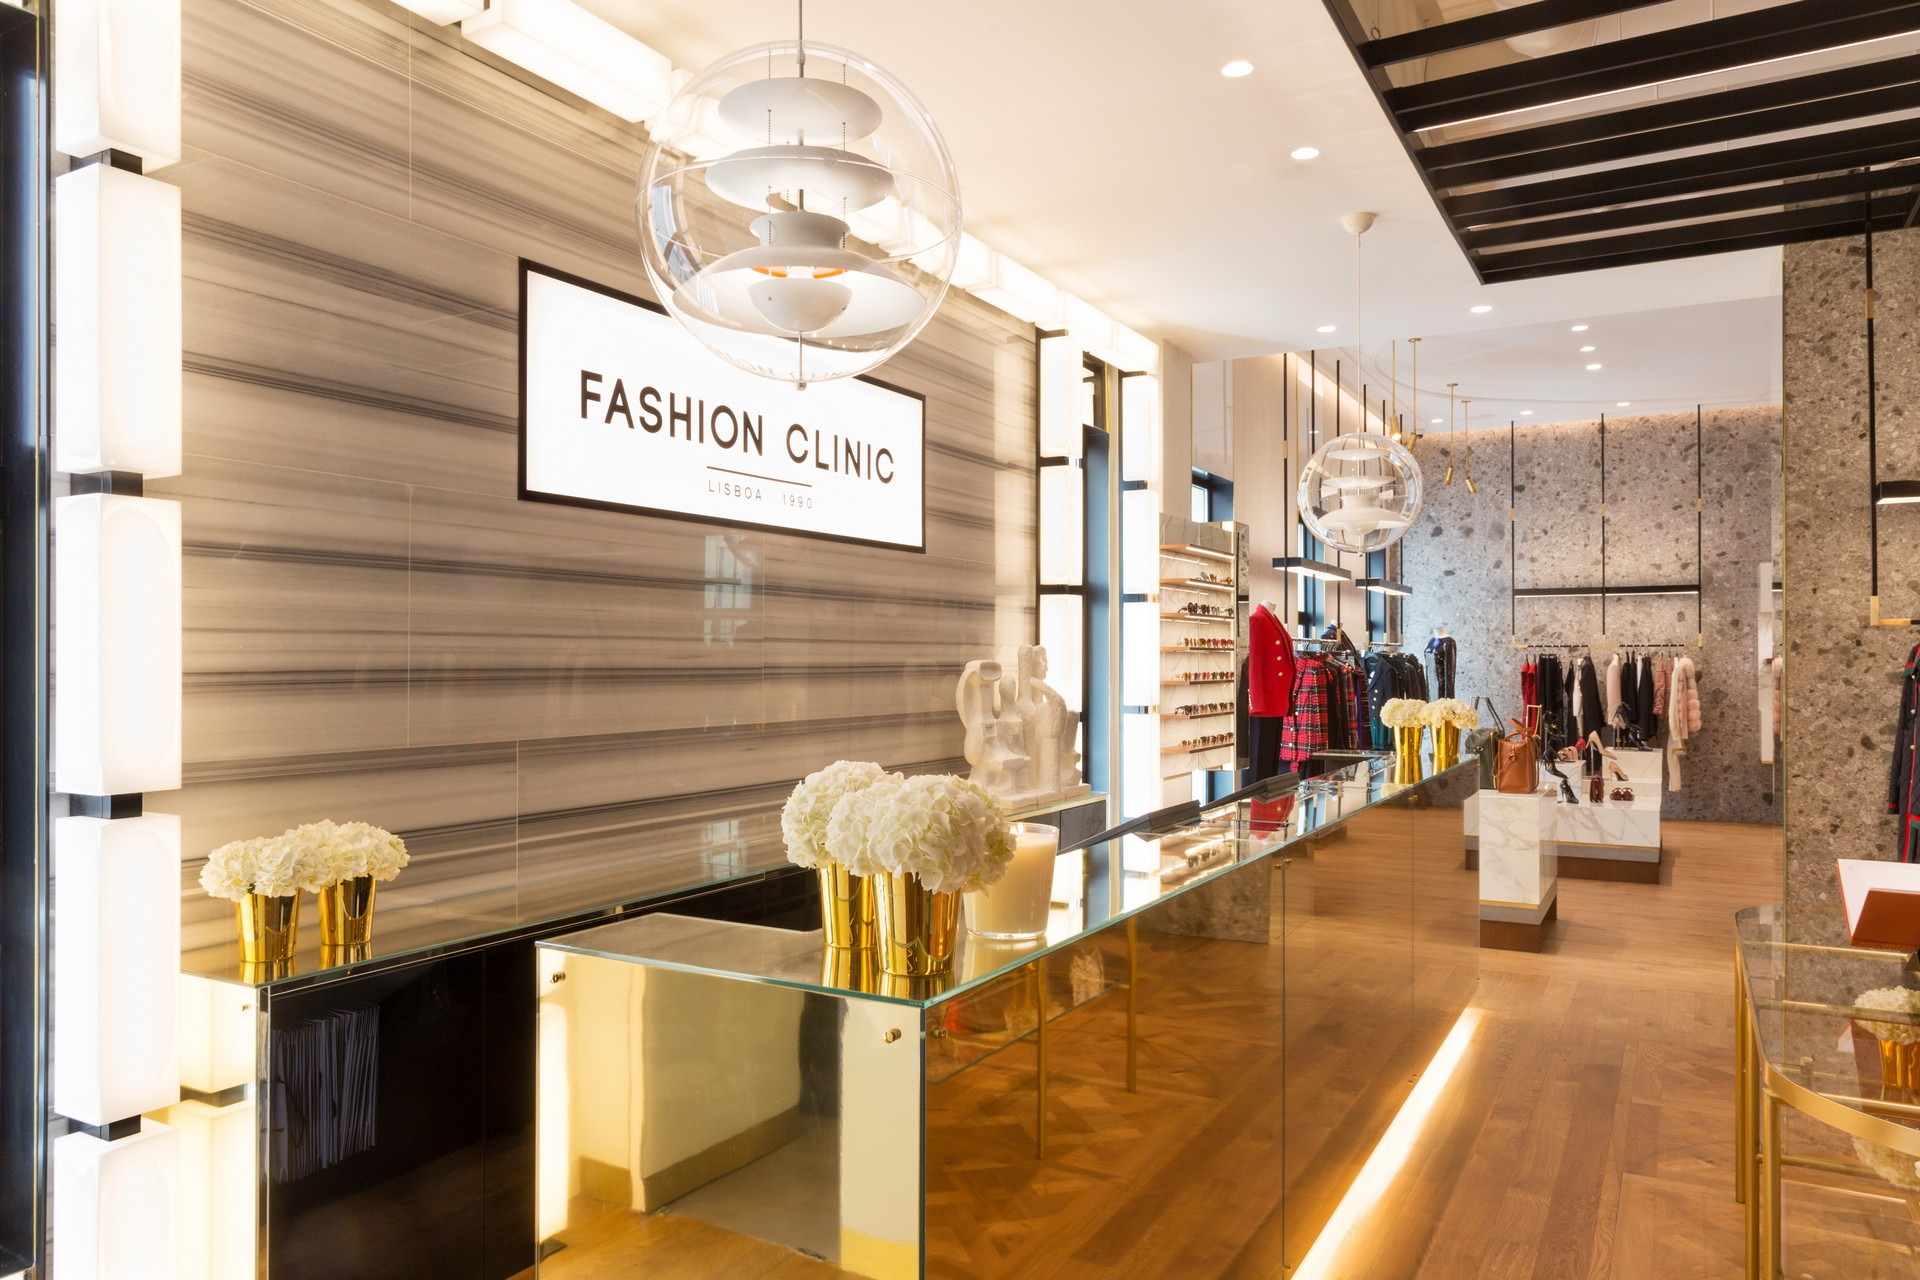 Best Luxury Stores To Be Discovered In Porto - Fashion Clinic best luxury stores Best Luxury Stores To Be Discovered In Porto Best Luxury Stores To Be Discovered In Porto 8